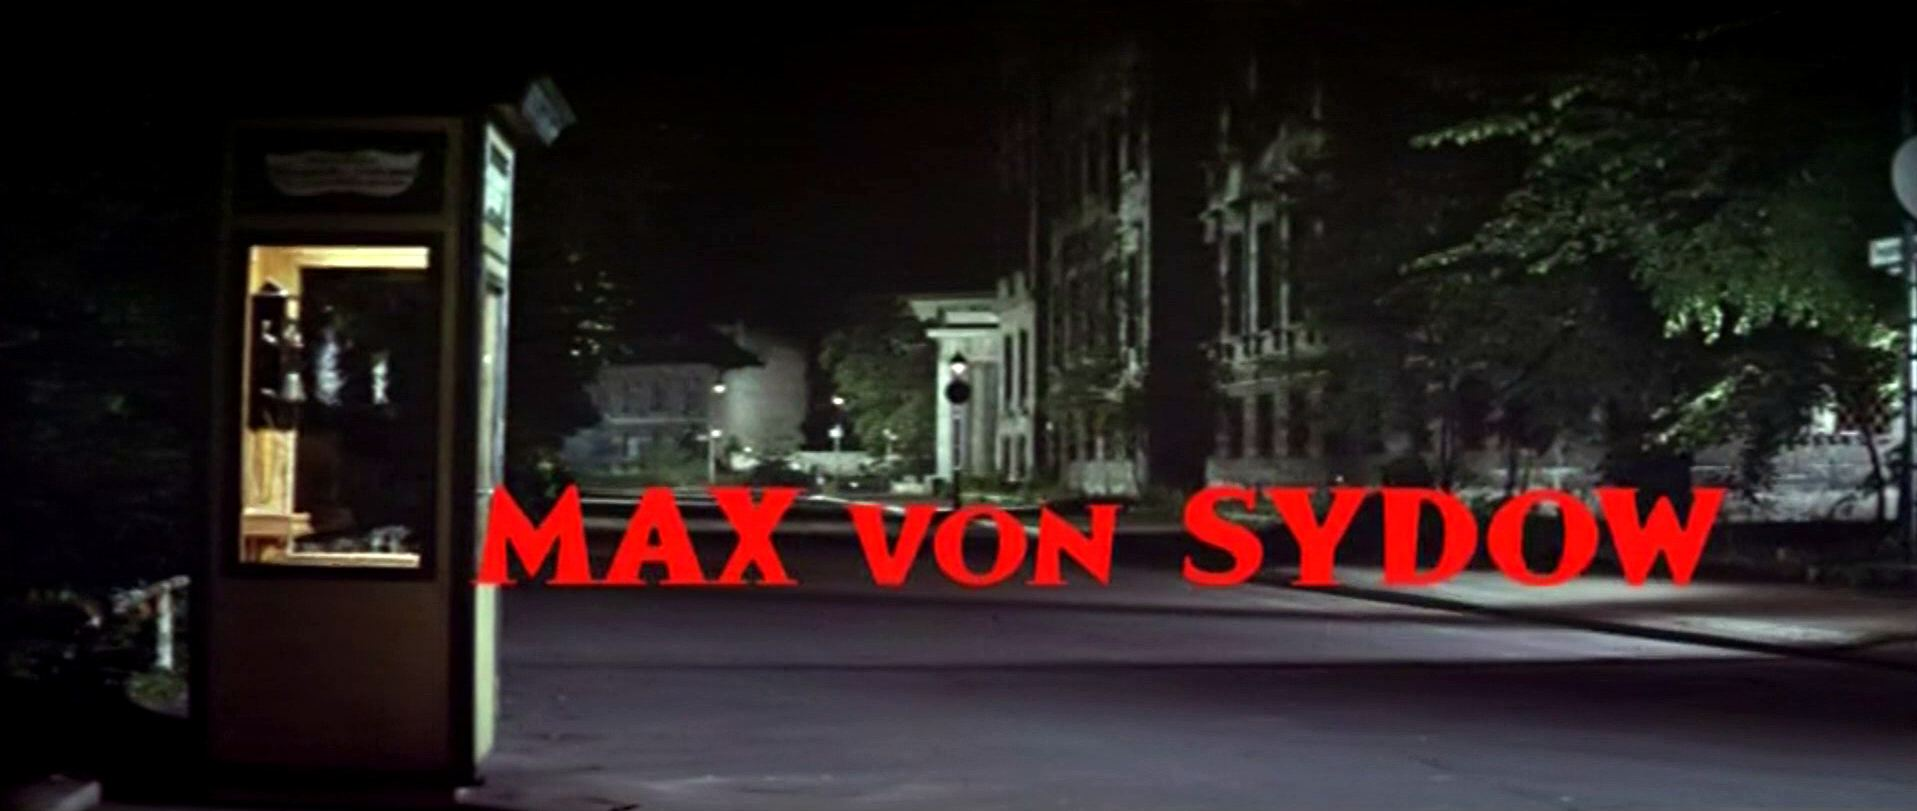 Main title from The Quiller Memorandum (1966) (6). Max von Sydow